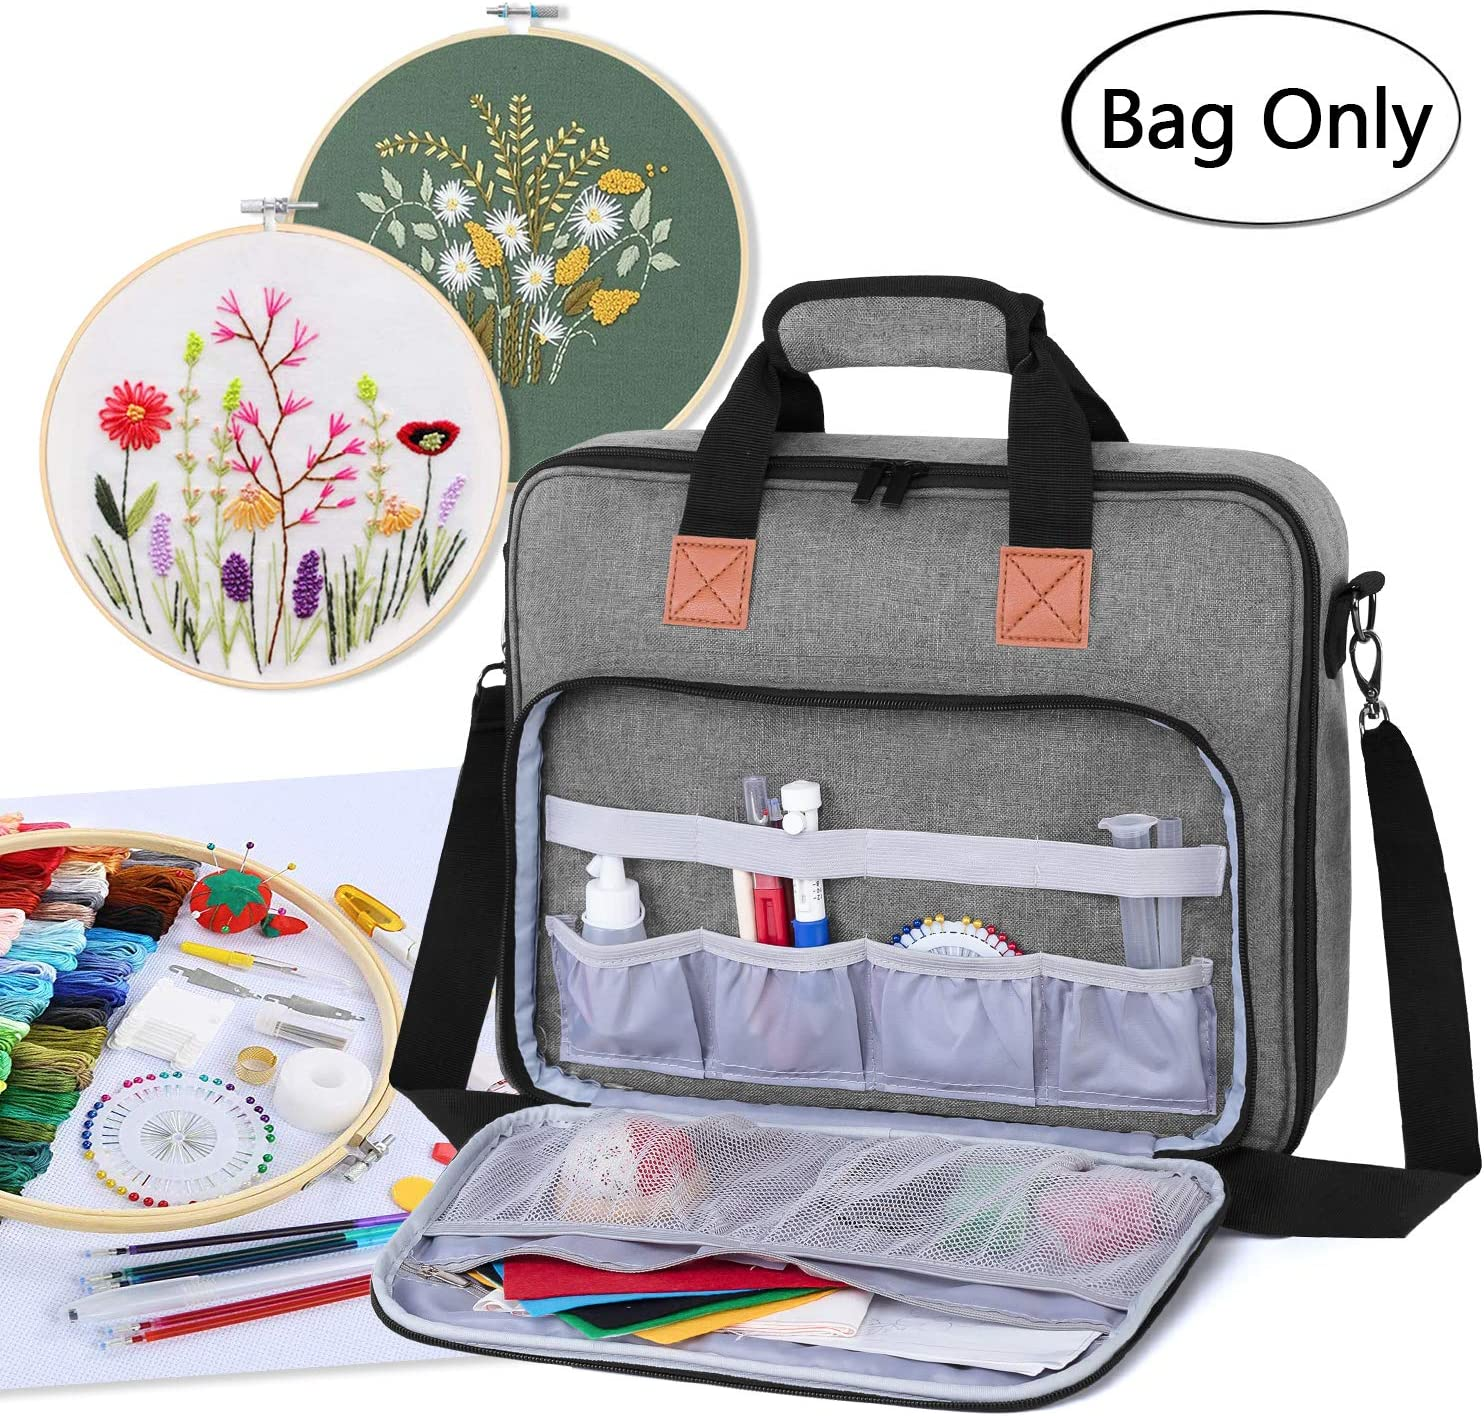 Luxja Embroidery Project Bag Embroidery Kits Storage Bag Bag Only Gray